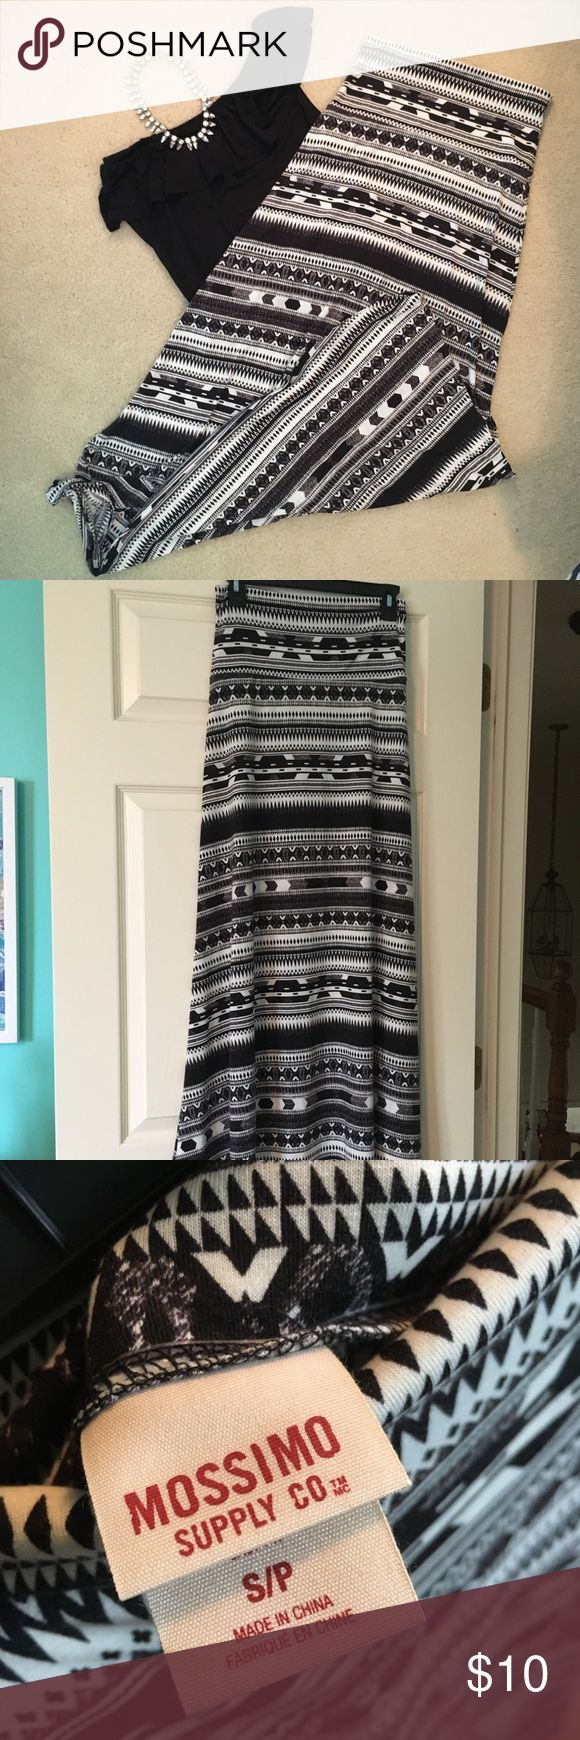 Target- Mossimo Tribal Maxi Skirt This fun maxi skirt is perfect for almost any occasion! Would look cute with a jean jacket or colored crop top!  95% polyester 5% spandex Width- 13 inches Length- 42 inches   Says small but could fit a medium!  Let me know if you have any questions or offers(: Mossimo Supply Co Skirts Maxi